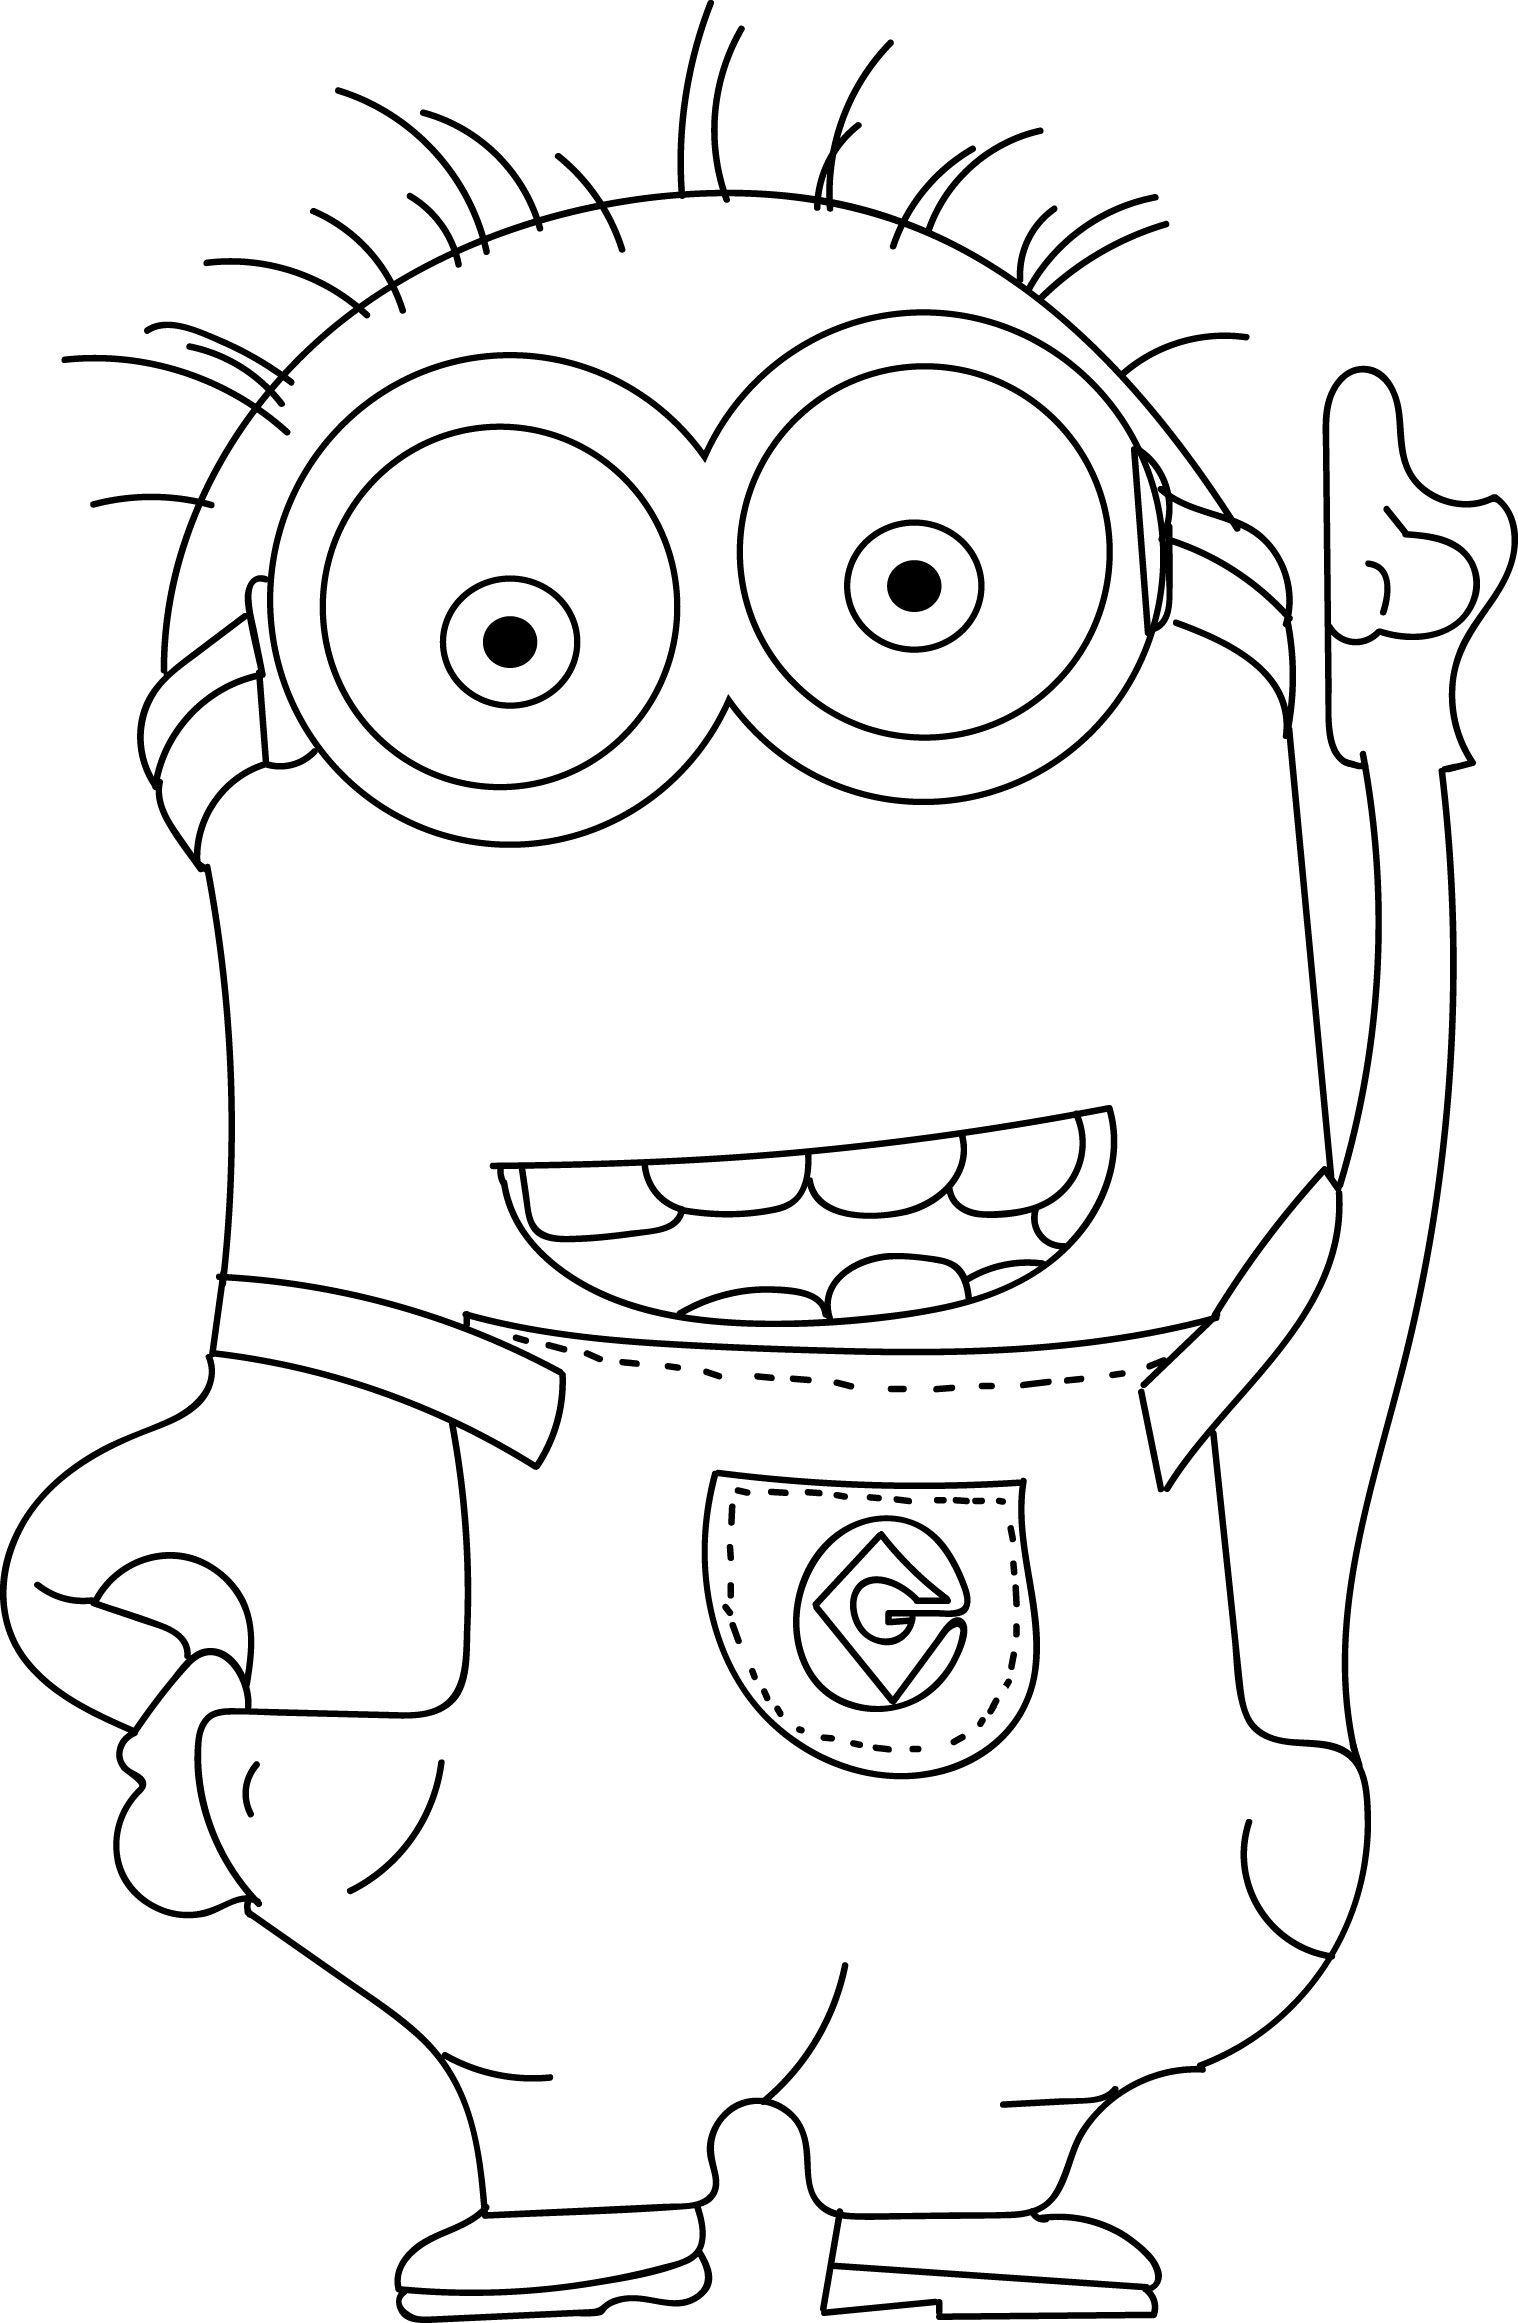 Minion maid coloring pages - Cool Minions Coloring Pages Check More At Http Wecoloringpage Com Minions